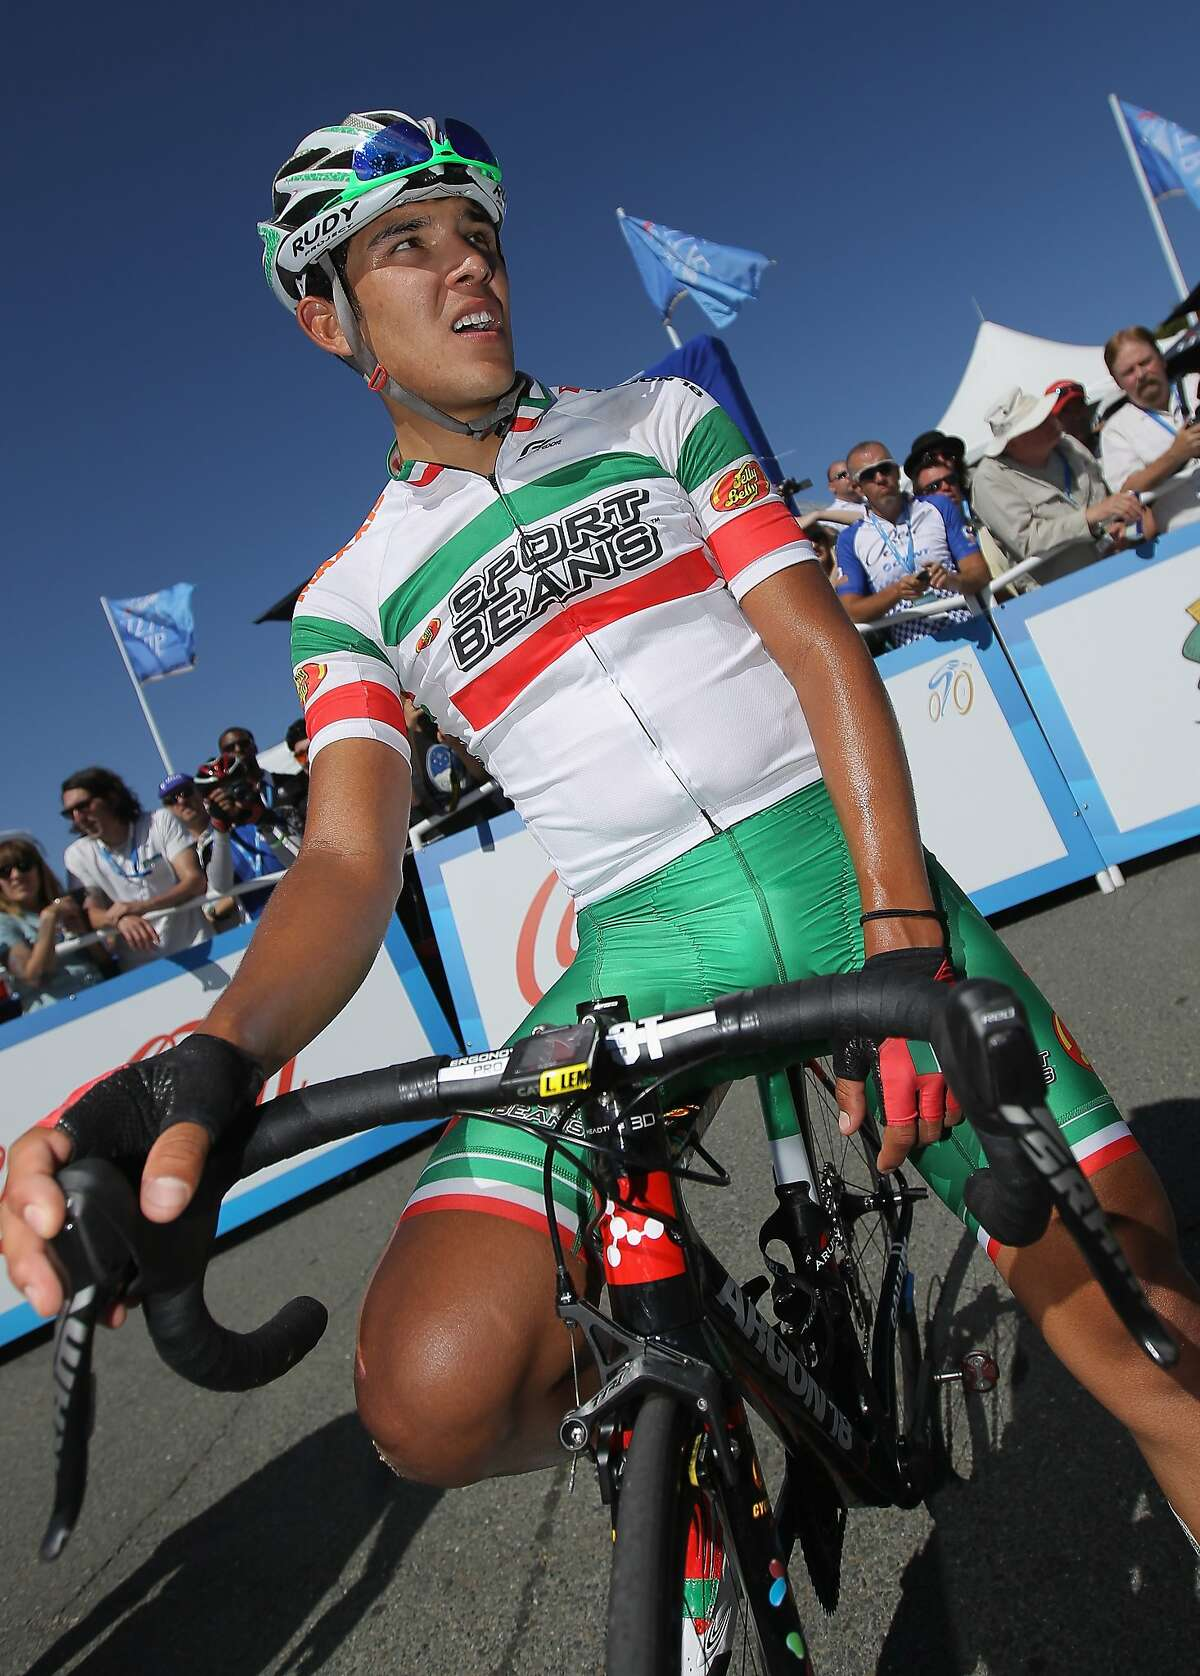 Luis Lemus of Mexico riding for Jelly Belly p/b Maxxis collects himself after finishing 22nd and being awarded the most courageous rider jersey in stage three of the 2014 Amgen Tour of California from San Jose to Mount Diablo on May 13, 2014 in Clayton, California.